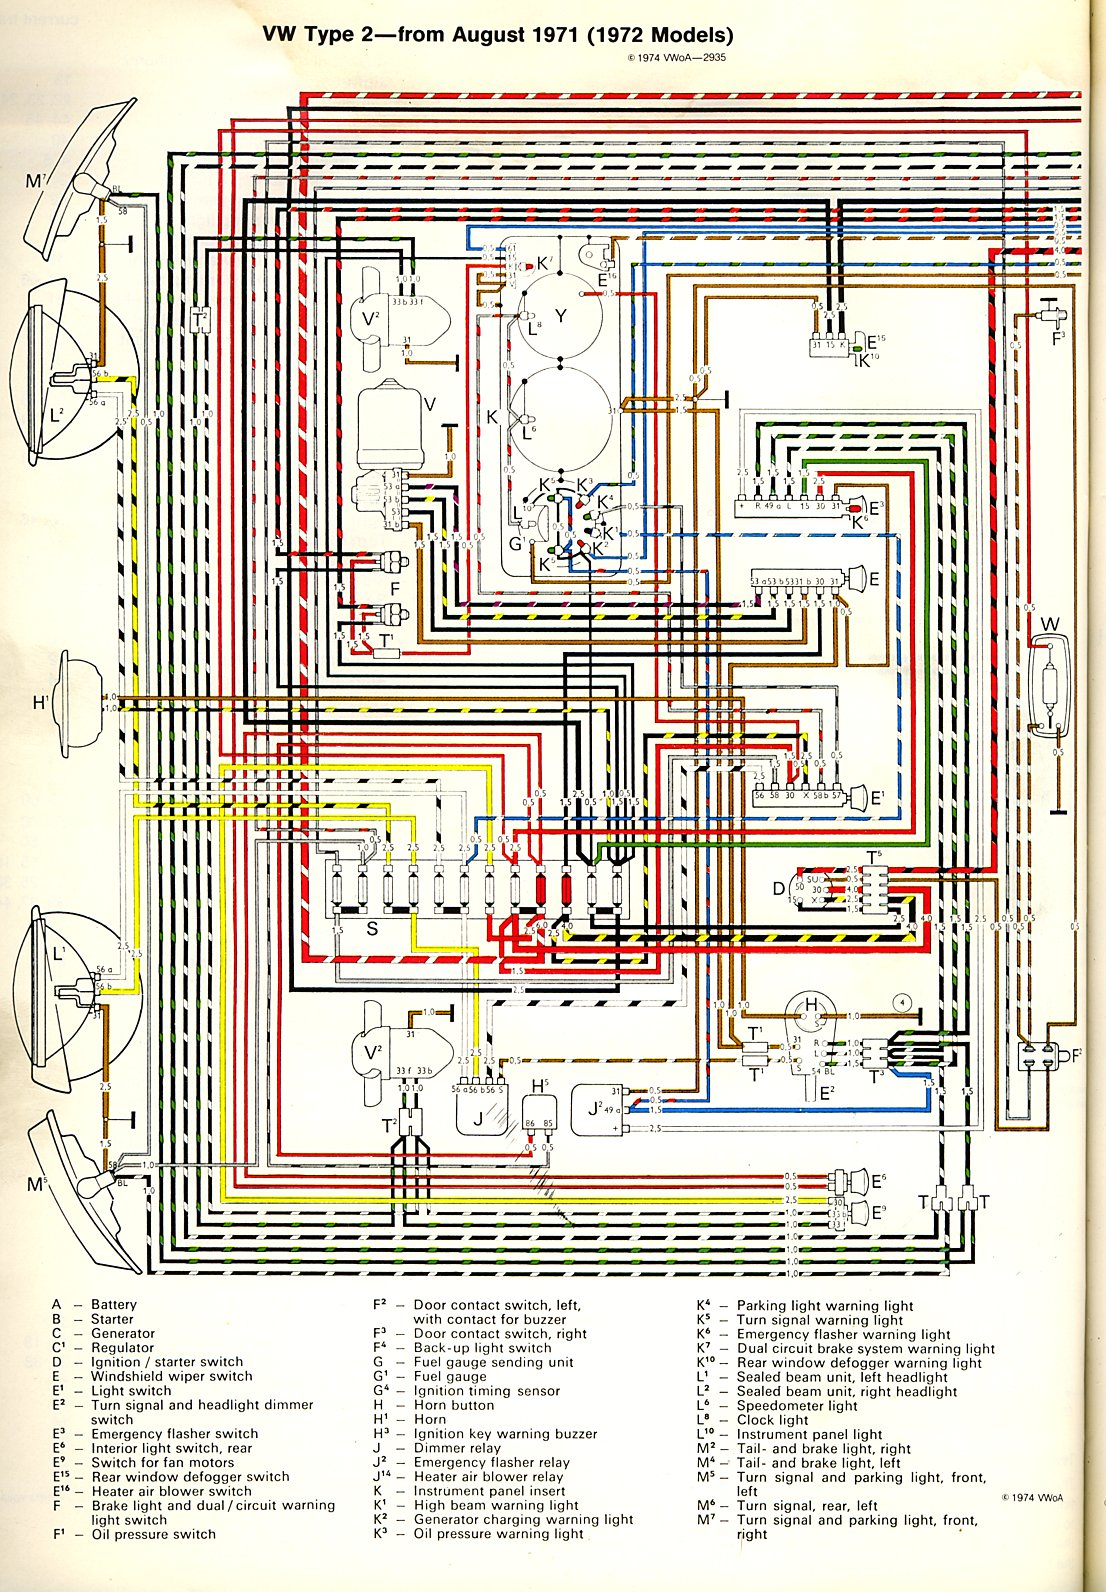 1972 Vw Bug Wiring Diagram